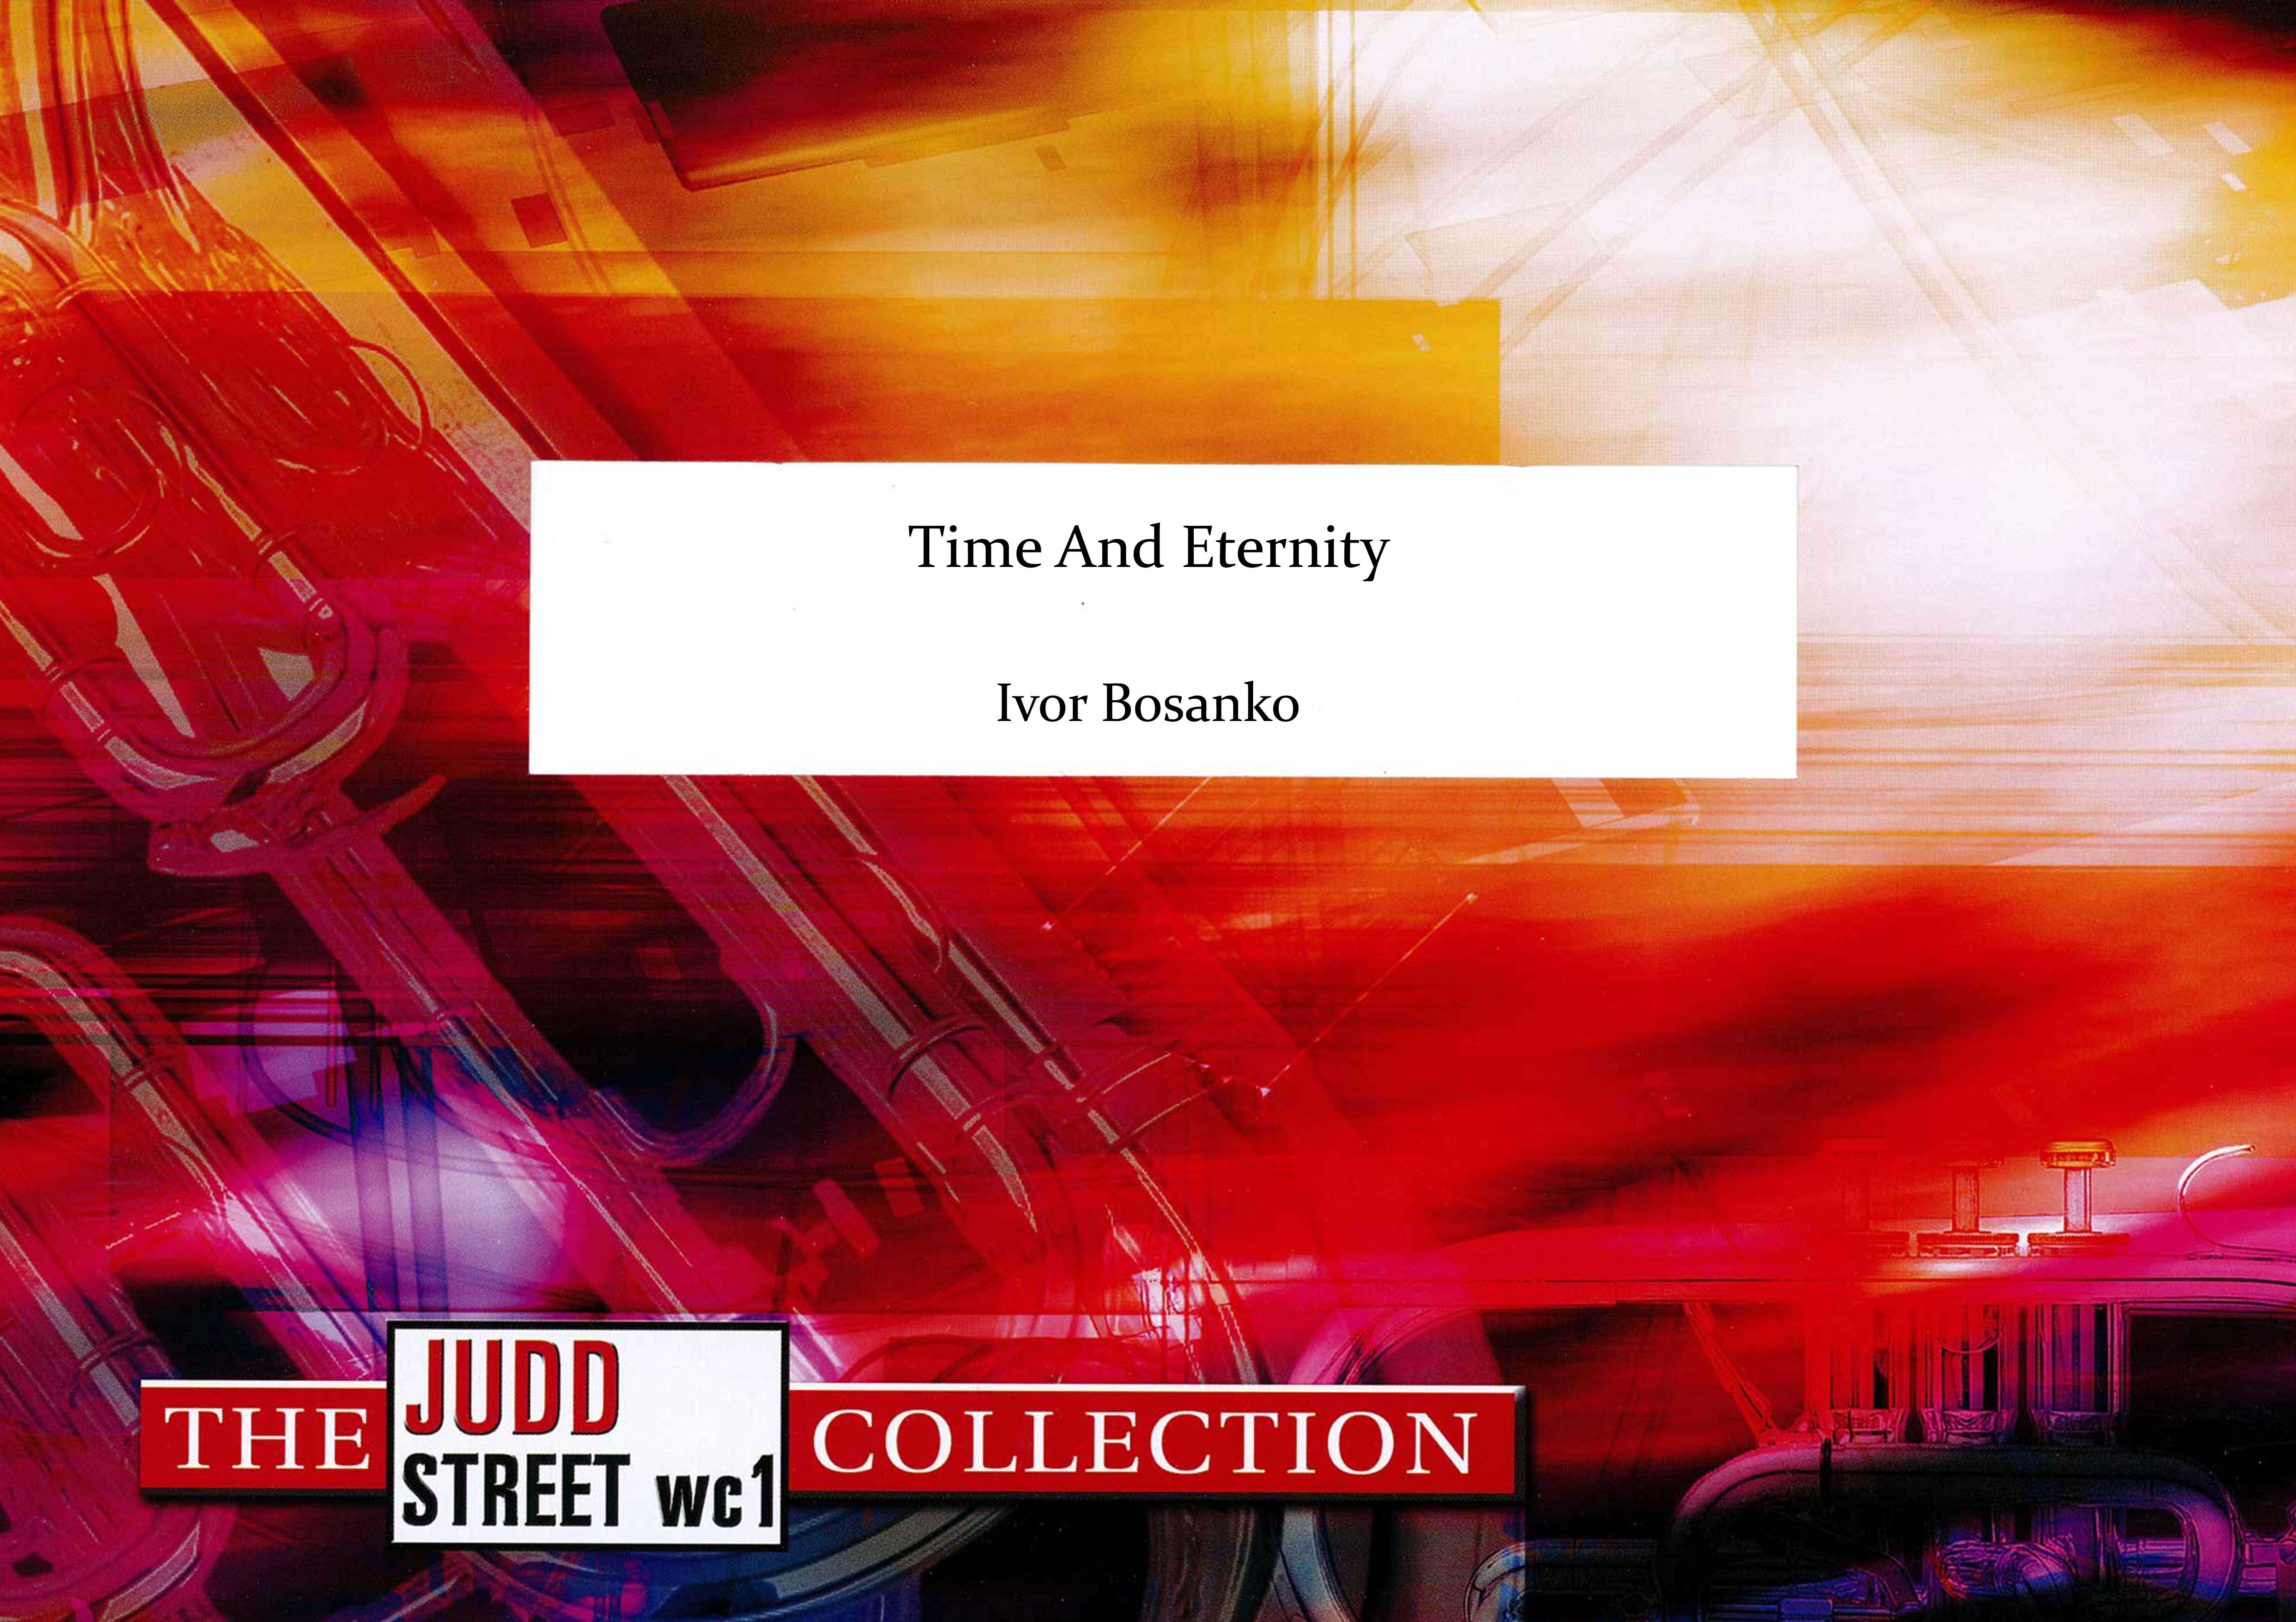 Time And Eternity (Cornet and Euphonium Duet with Brass Band - Score and Parts)